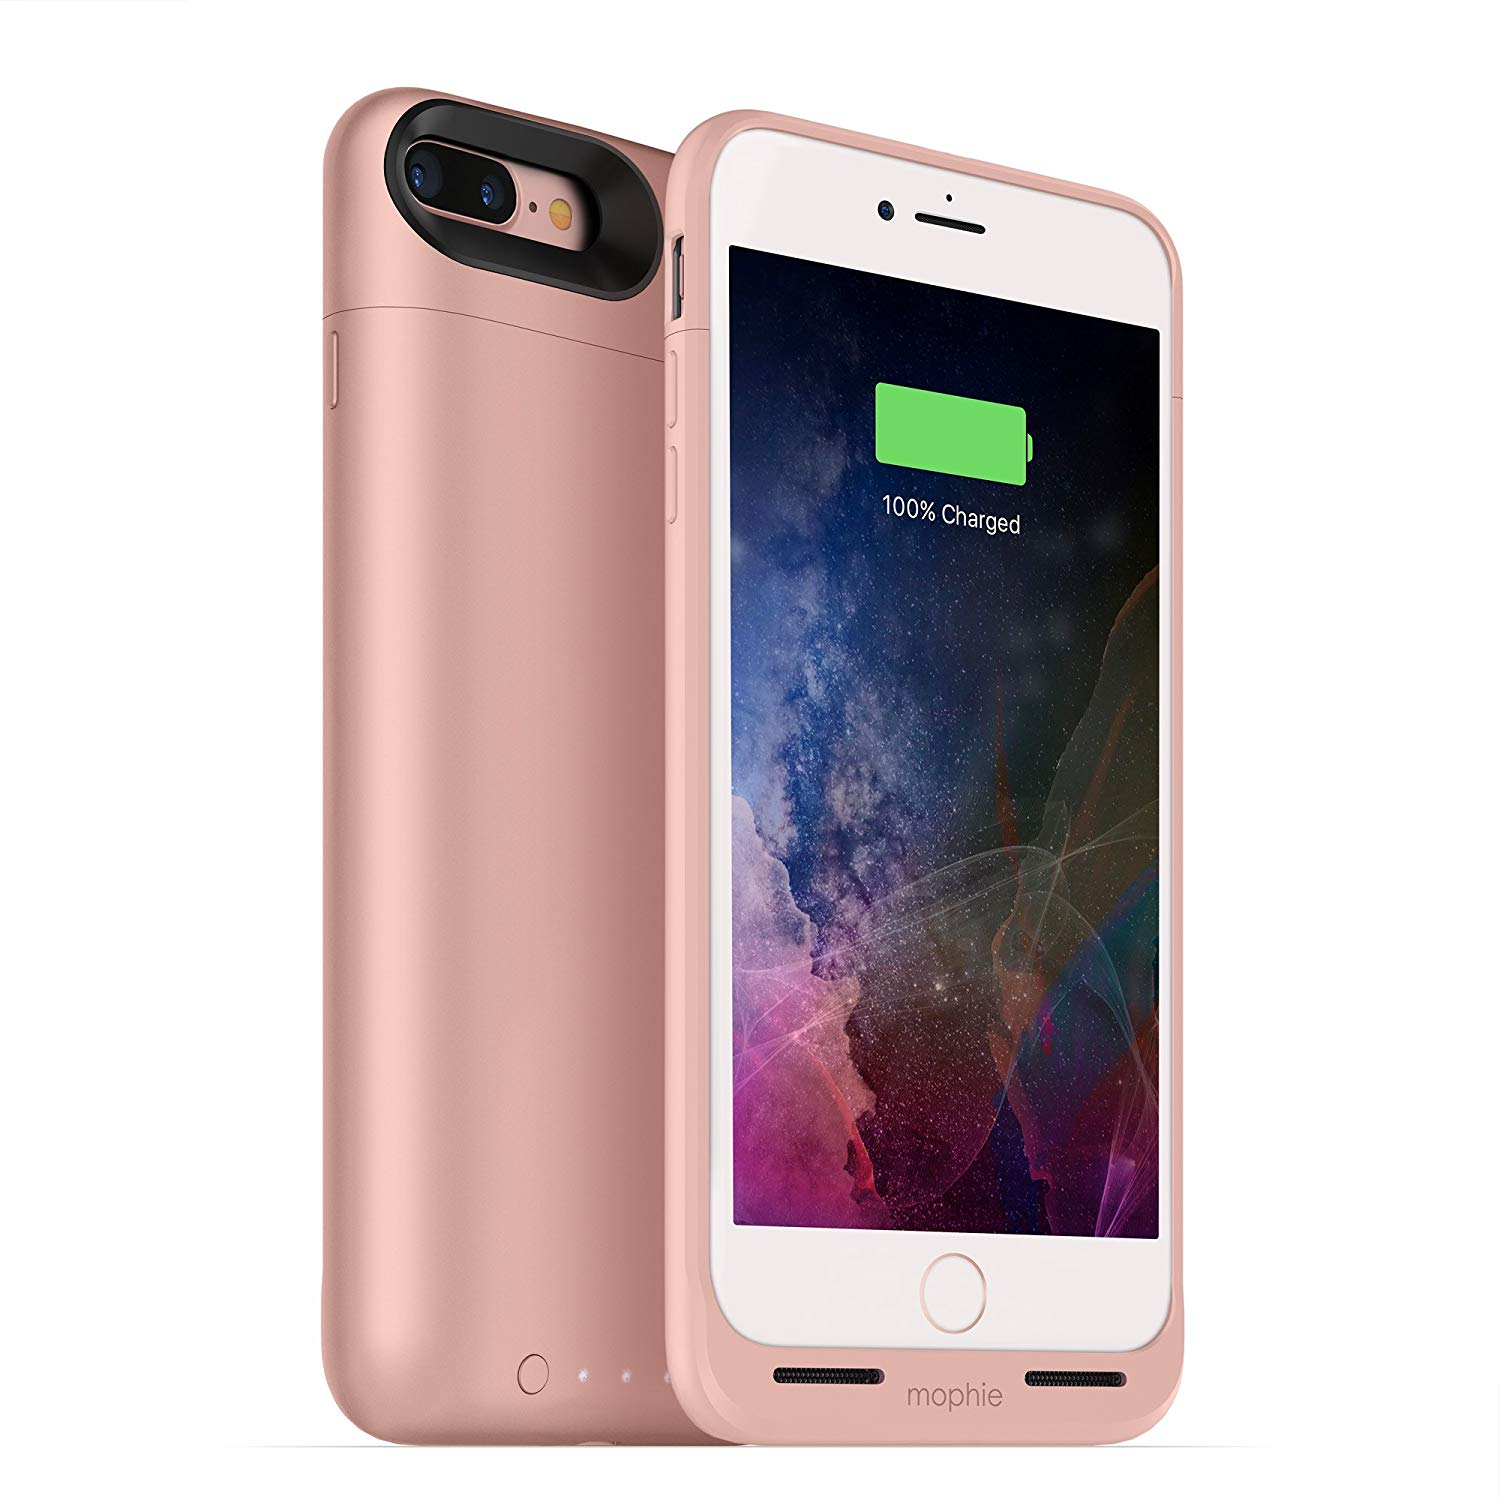 77065cecc95 Details about mophie Juice Pack Air Battery Charging Case for iPhone 7 PLUS,  8 PLUS Rose Gold